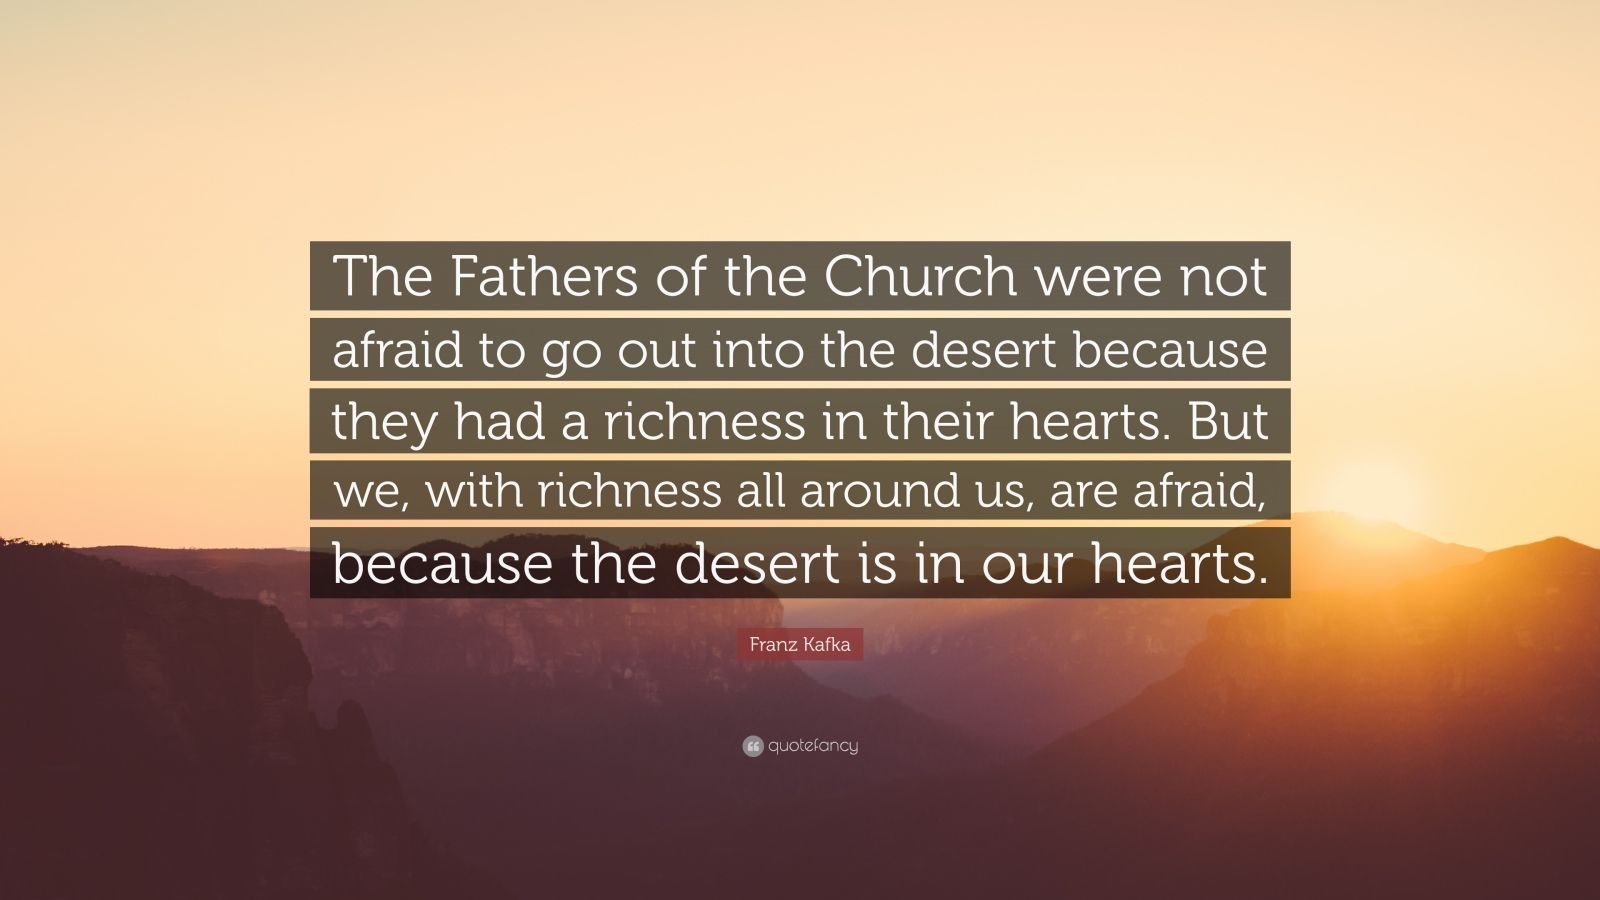 """Franz Kafka Quote: """"The Fathers of the Church were not afraid to go out into the desert because they had a richness in their hearts. But we, with richness all around us, are afraid, because the desert is in our hearts."""""""